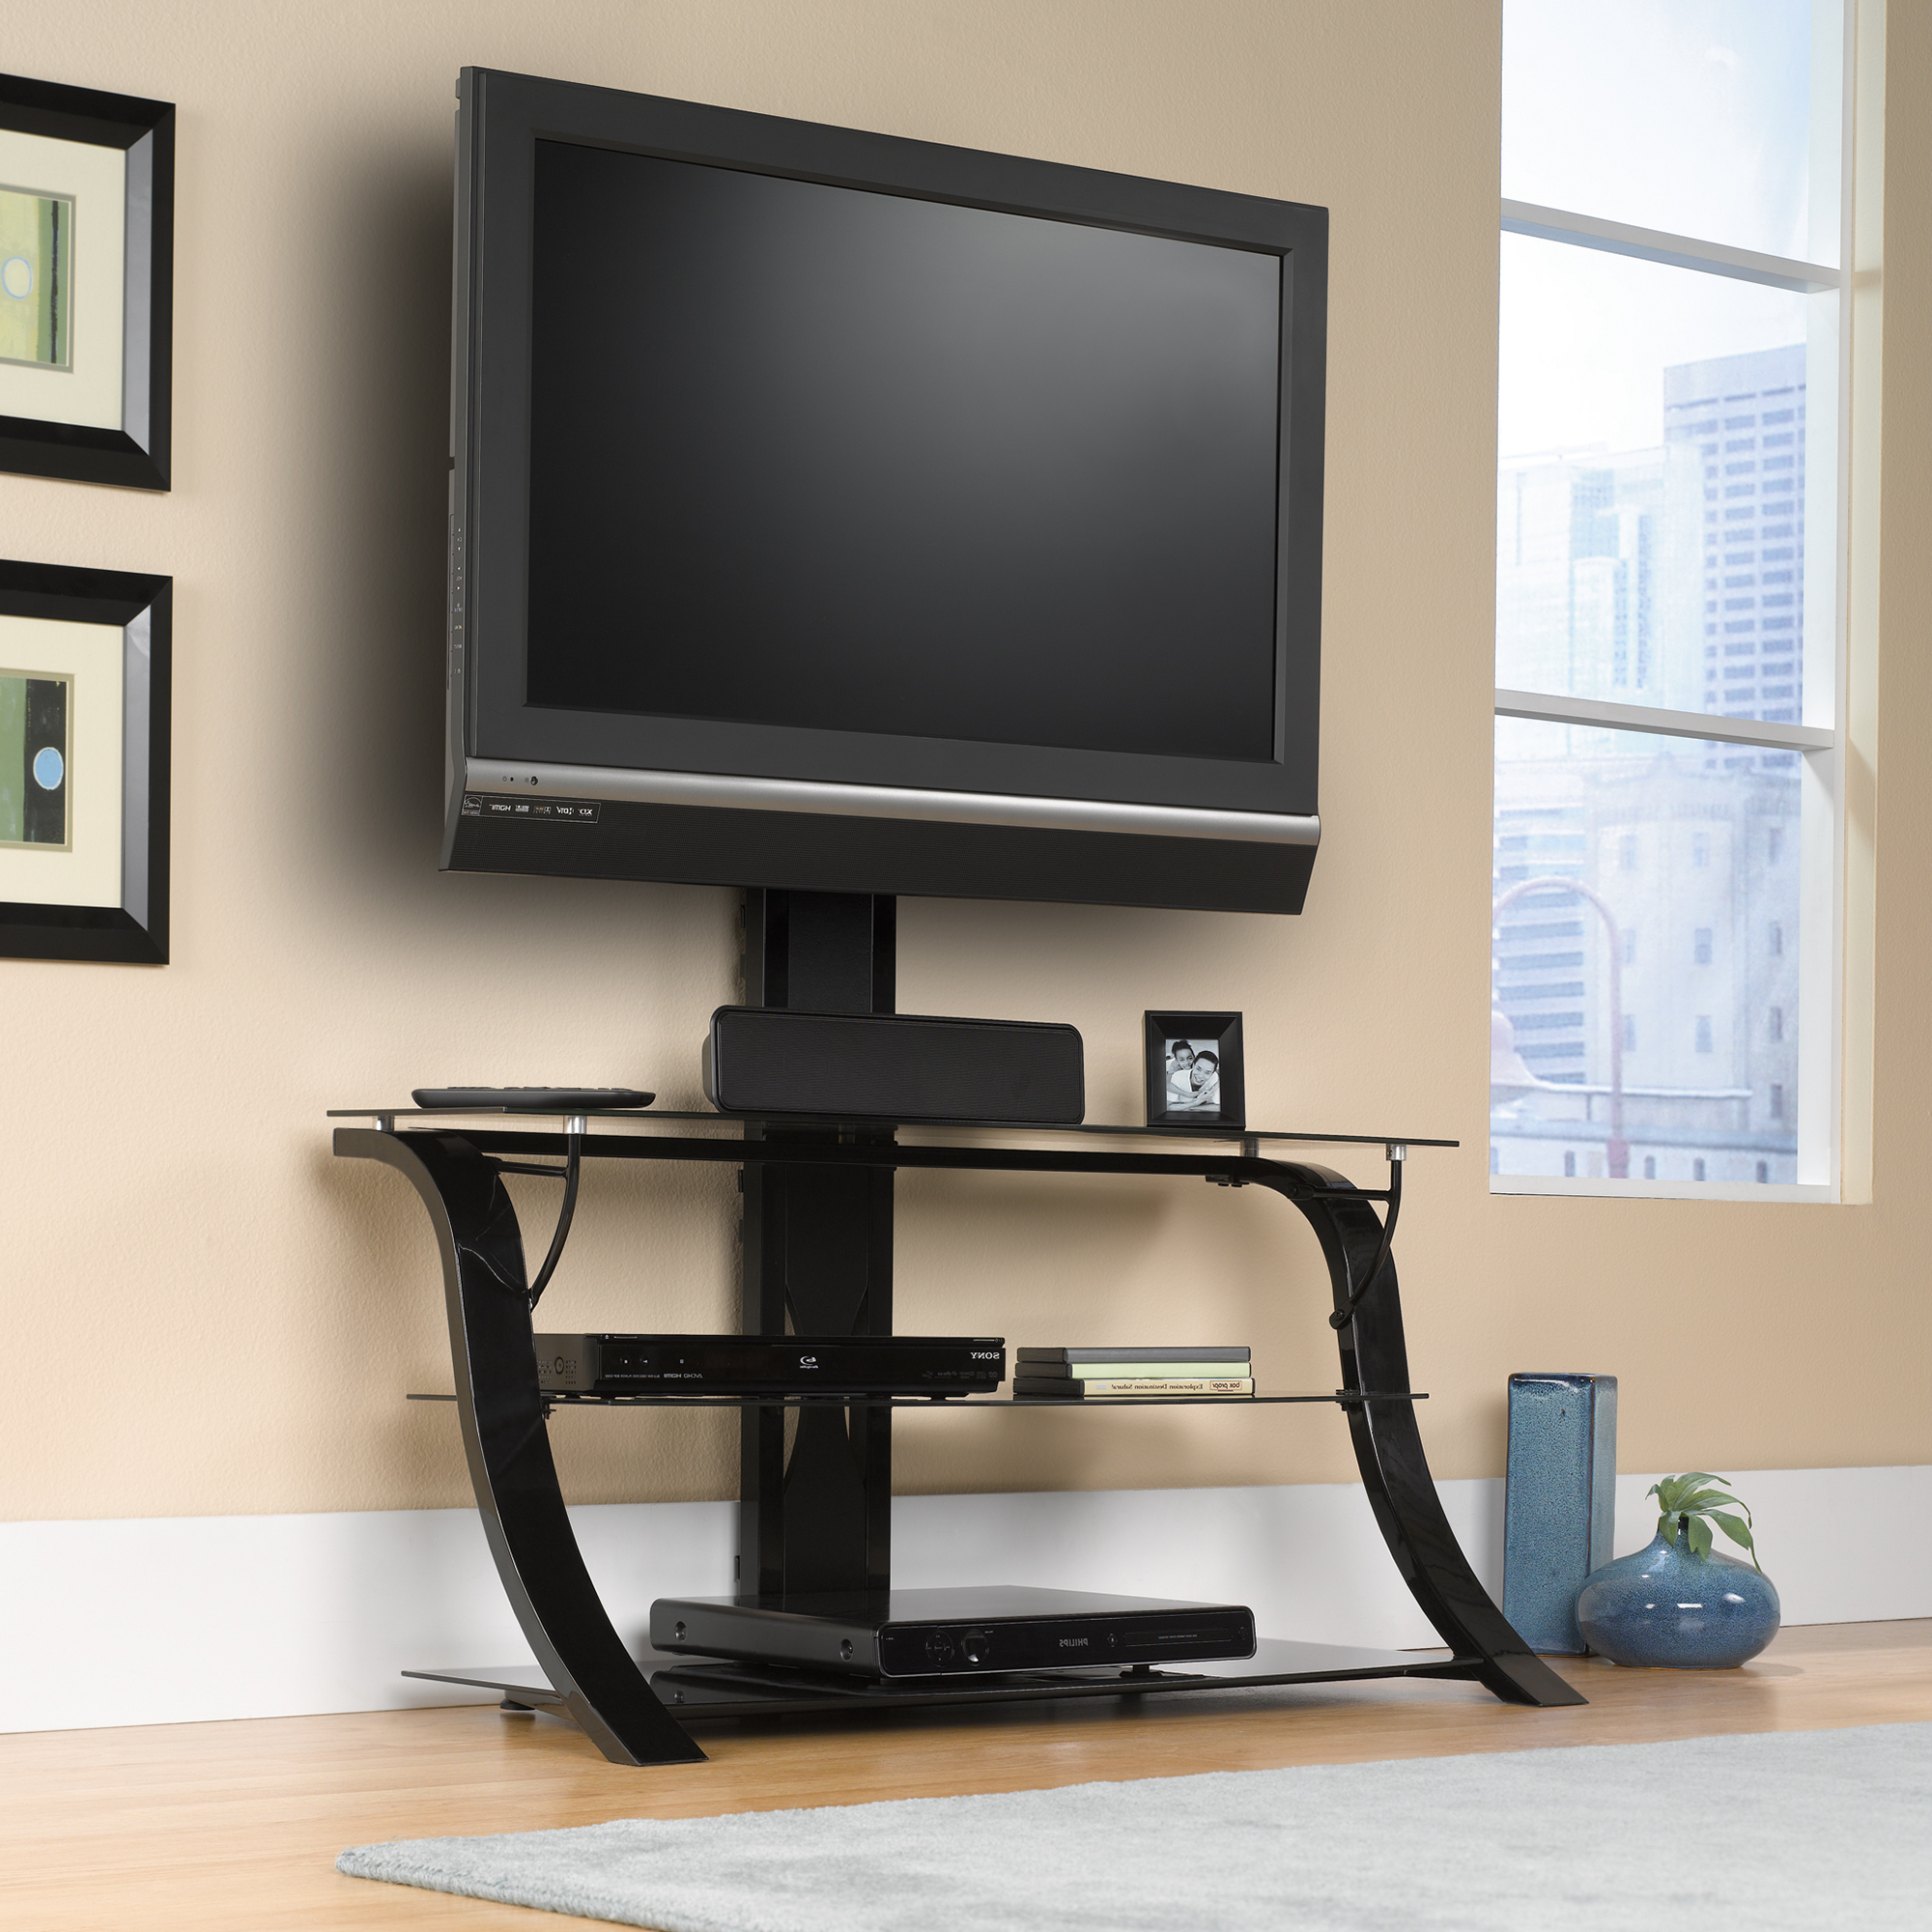 Trendy Tv Stand With Mount Corner Stands Wood Armoire Flat Panel Fireplace Inside Wayfair Corner Tv Stands (View 9 of 20)